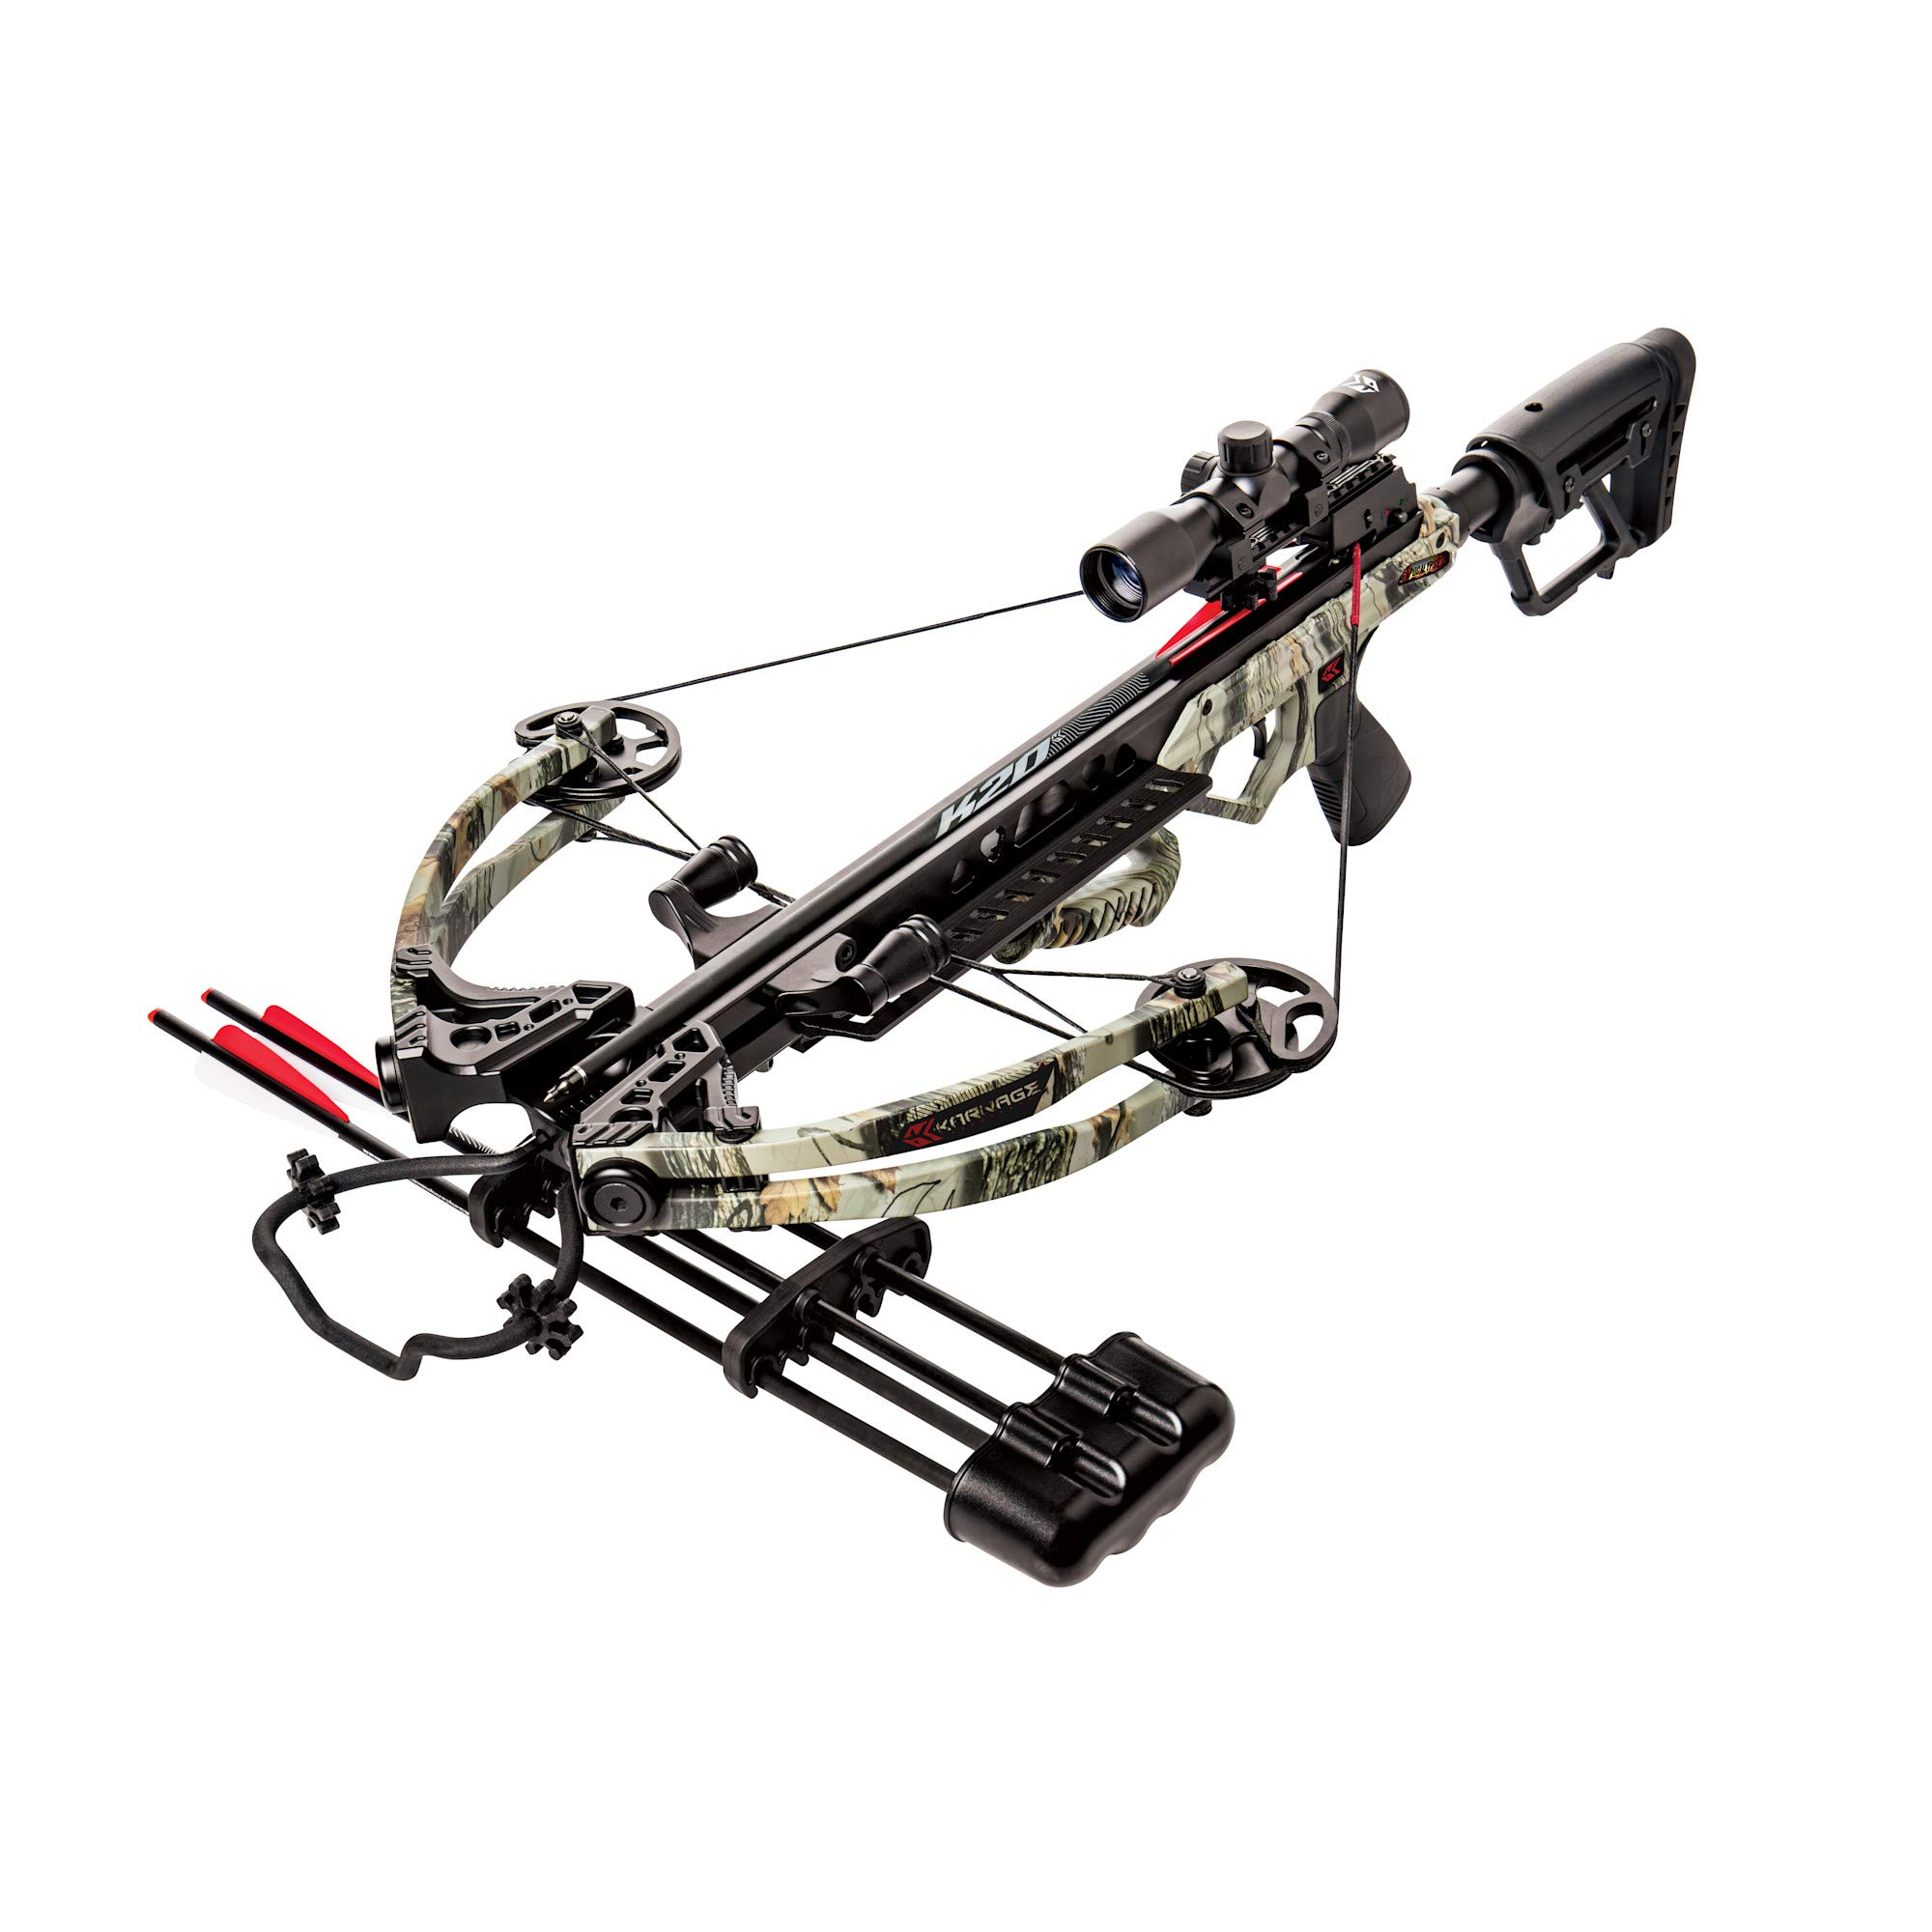 Karnage Apocalypse Crossbow Package Includes Arrows, Quiver, Detachable Sling, Wax, Cocking Rope, and Scope by Bear Archery